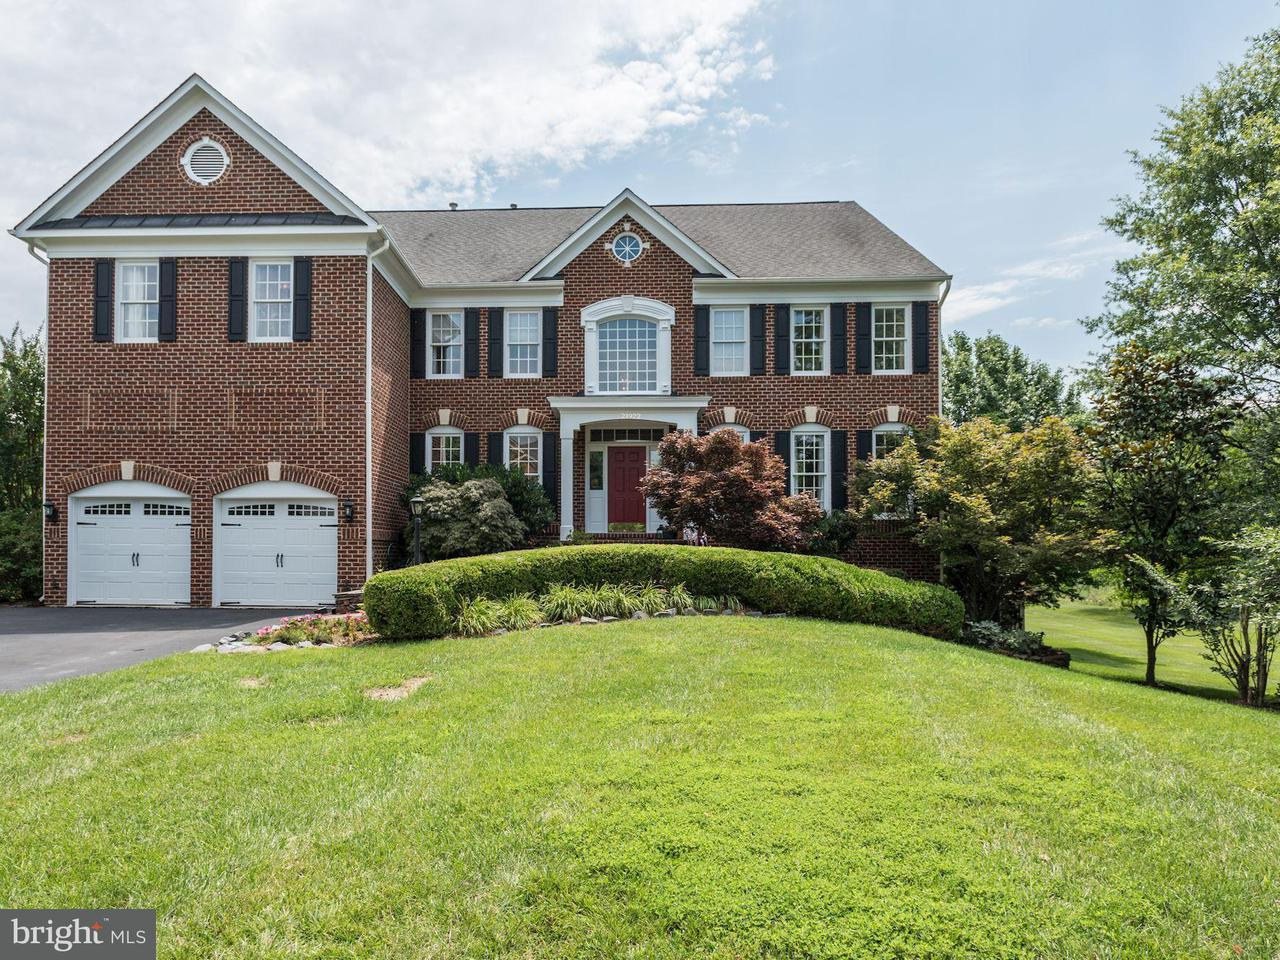 Single Family Home for Sale at 21922 HYDE PARK Drive 21922 HYDE PARK Drive Ashburn, Virginia 20147 United States